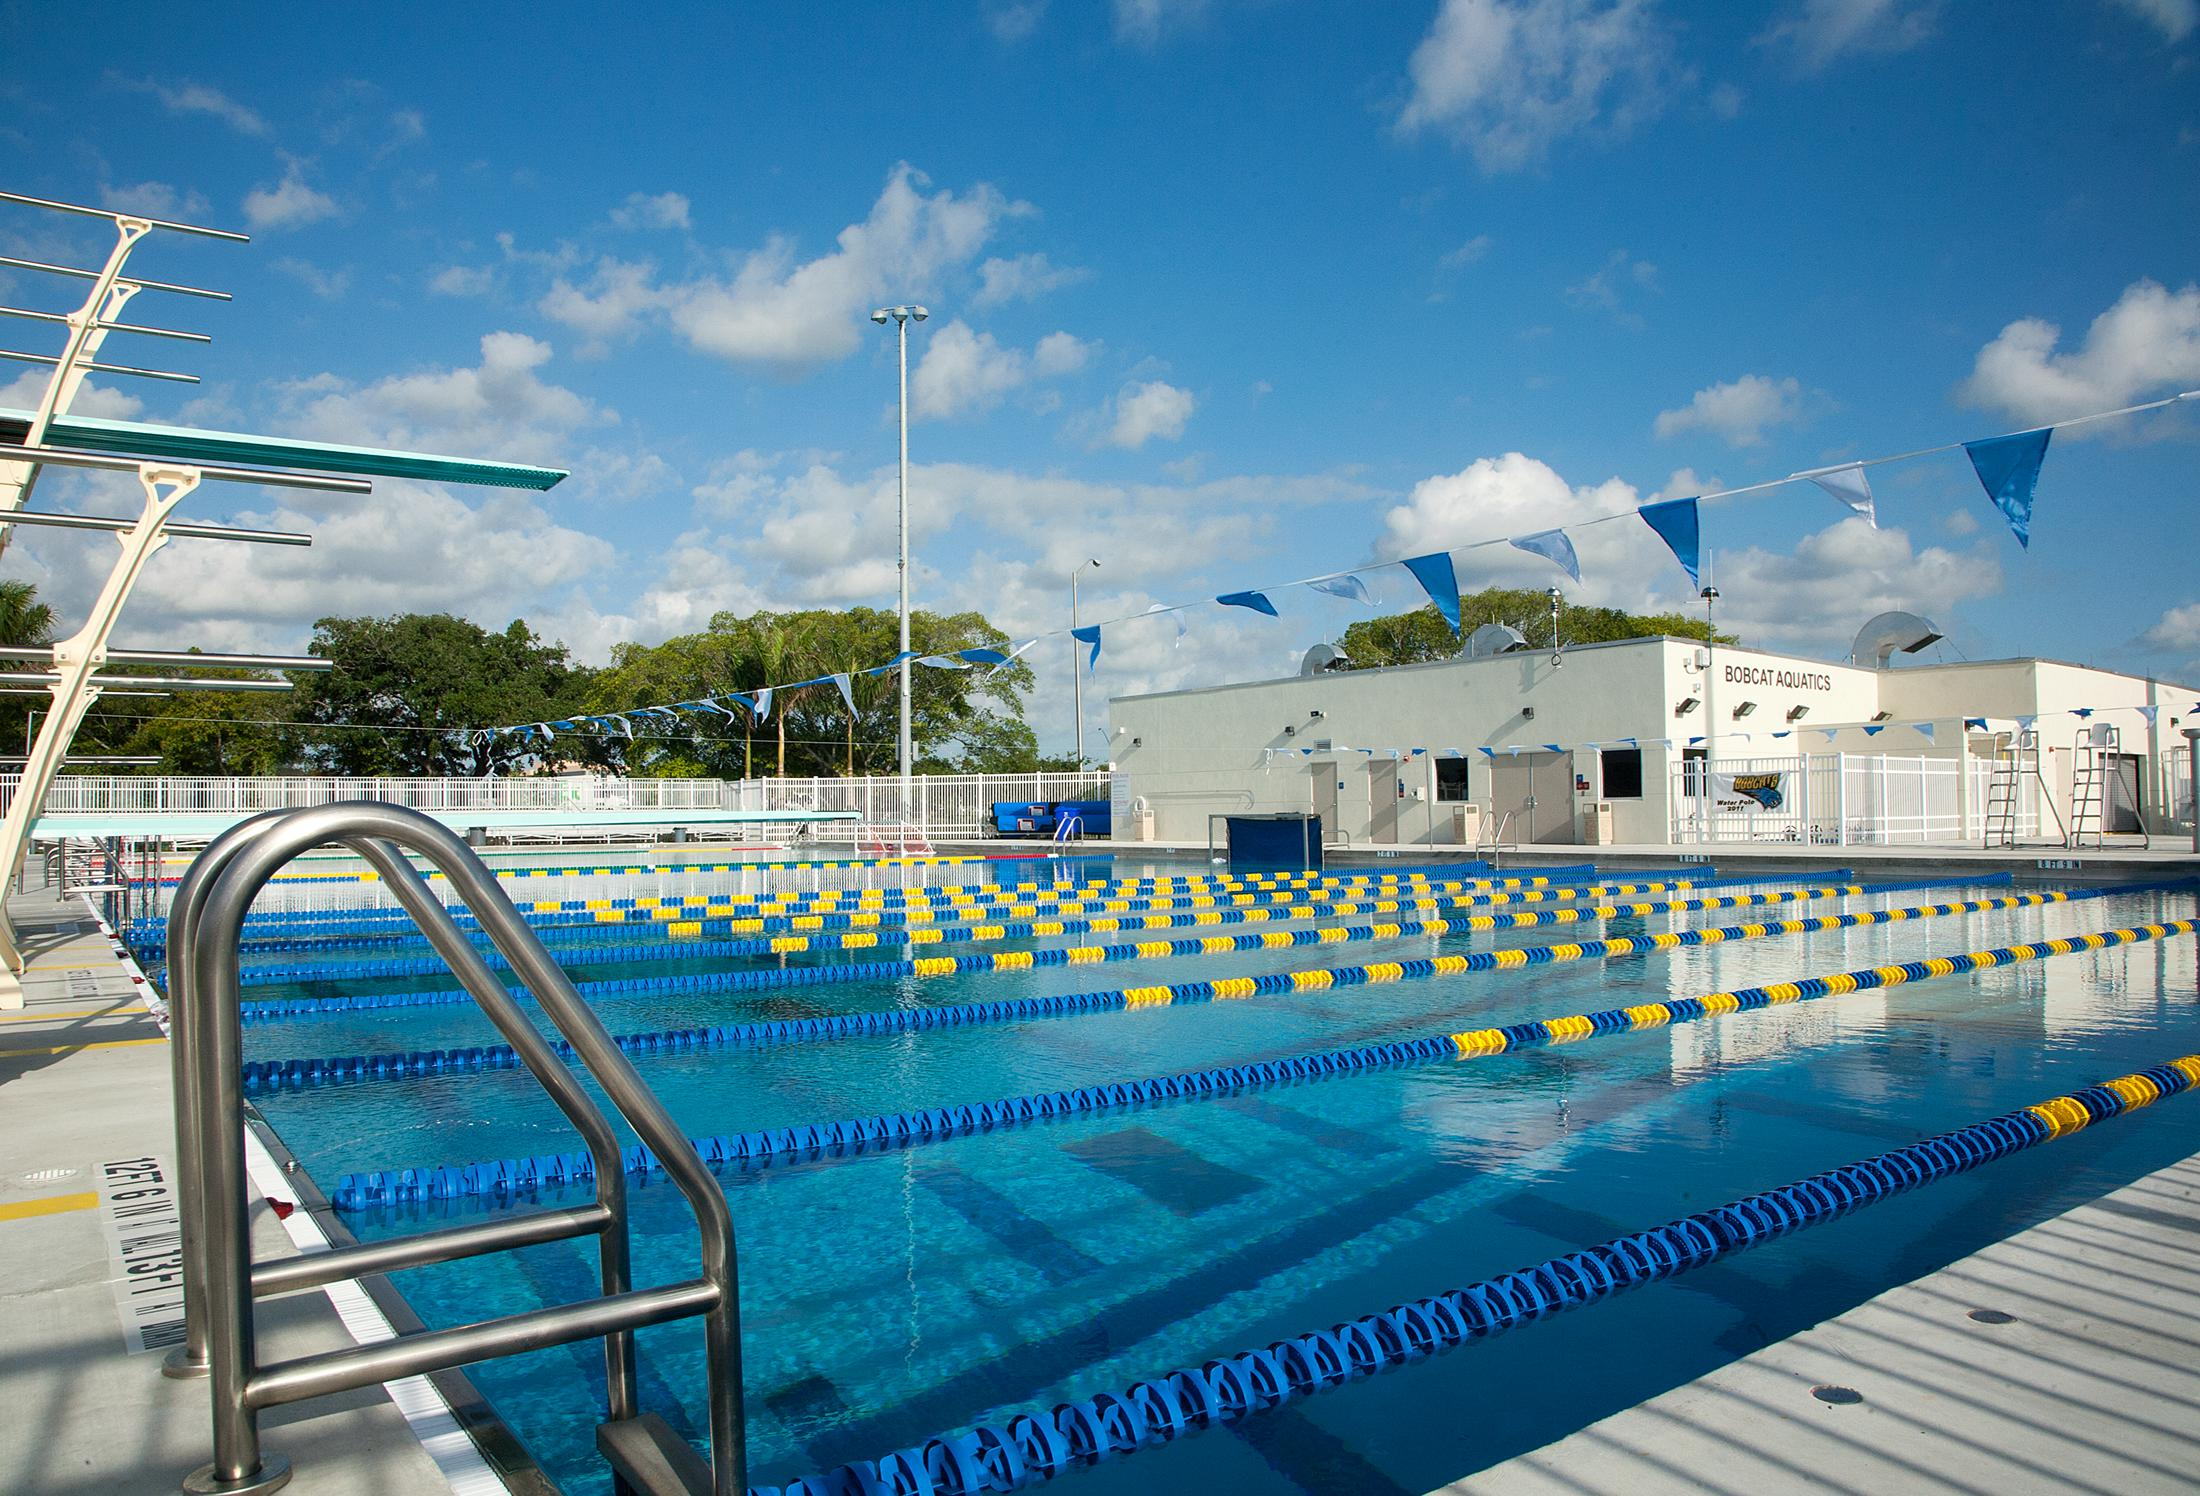 Boca Raton High School Aquatic Complex